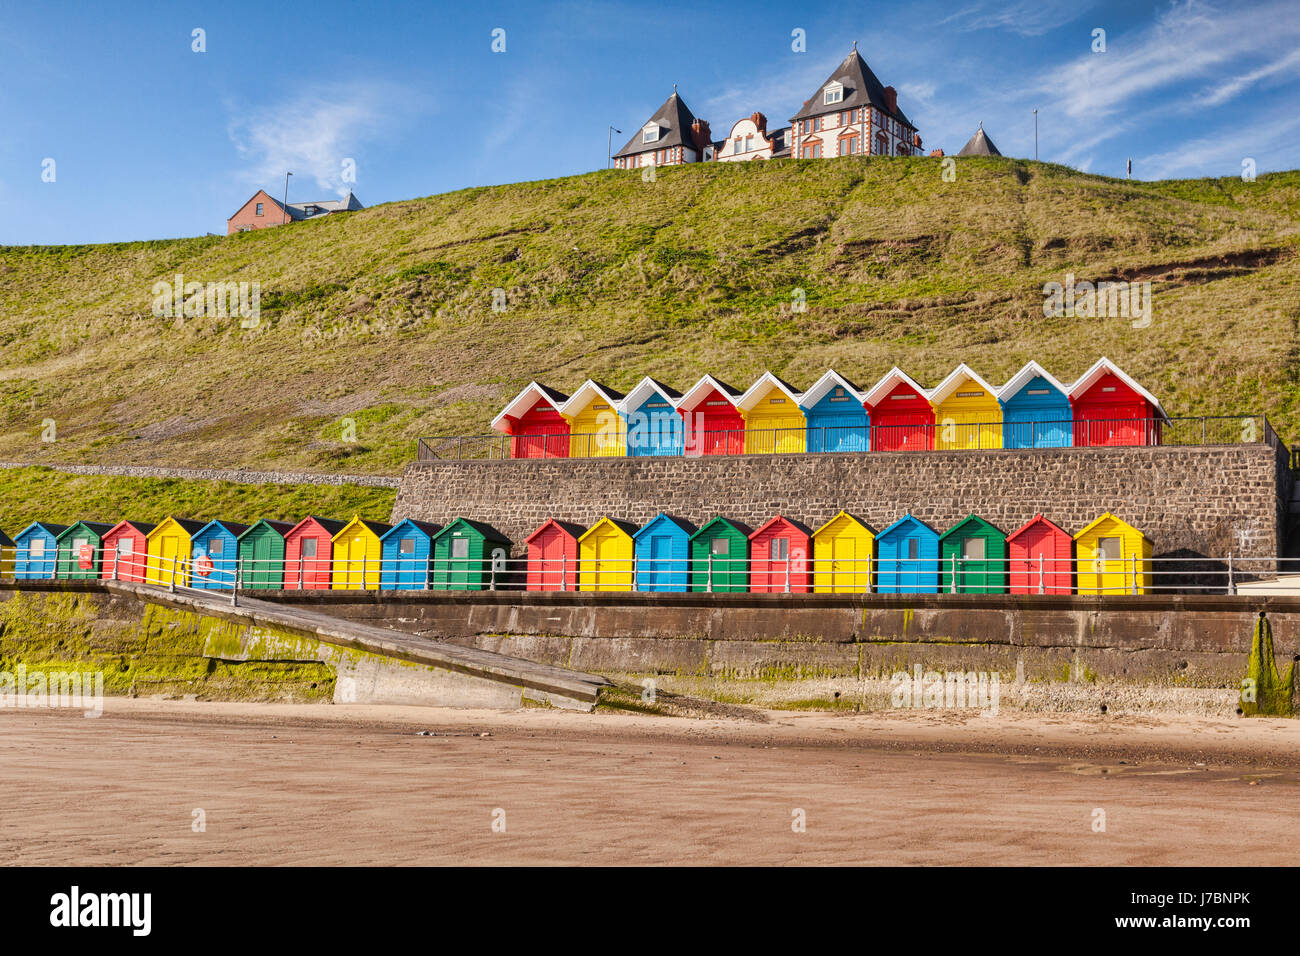 Rows of colorful beach huts on the promenade at Whitby Sands, Whitby, North Yorkshire, England, UK, on a beautiful - Stock Image